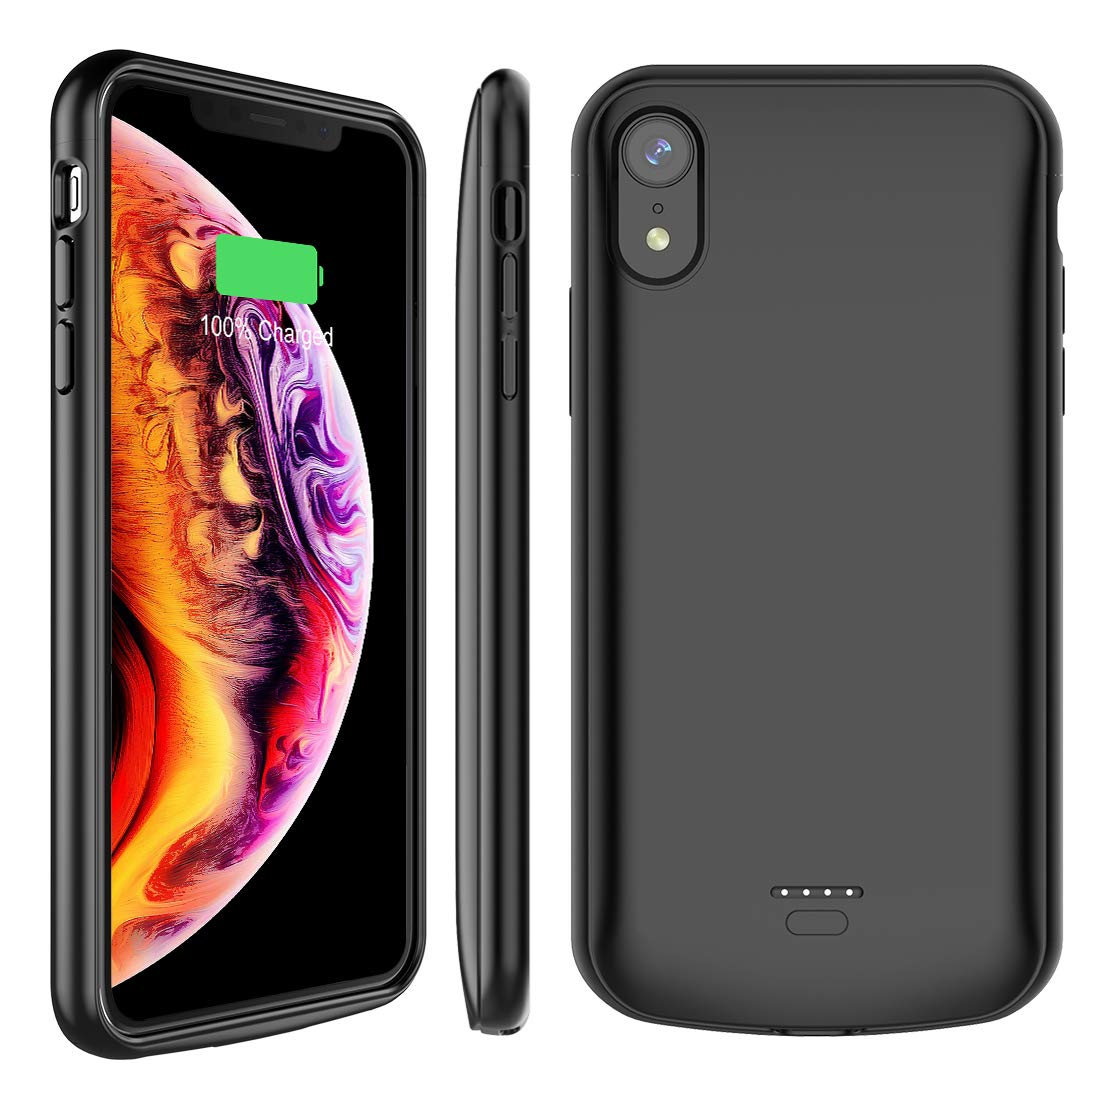 Funda Con Bateria de 5000mah para Apple Iphone Xr TREBLEWIND [7NZZRPB4]